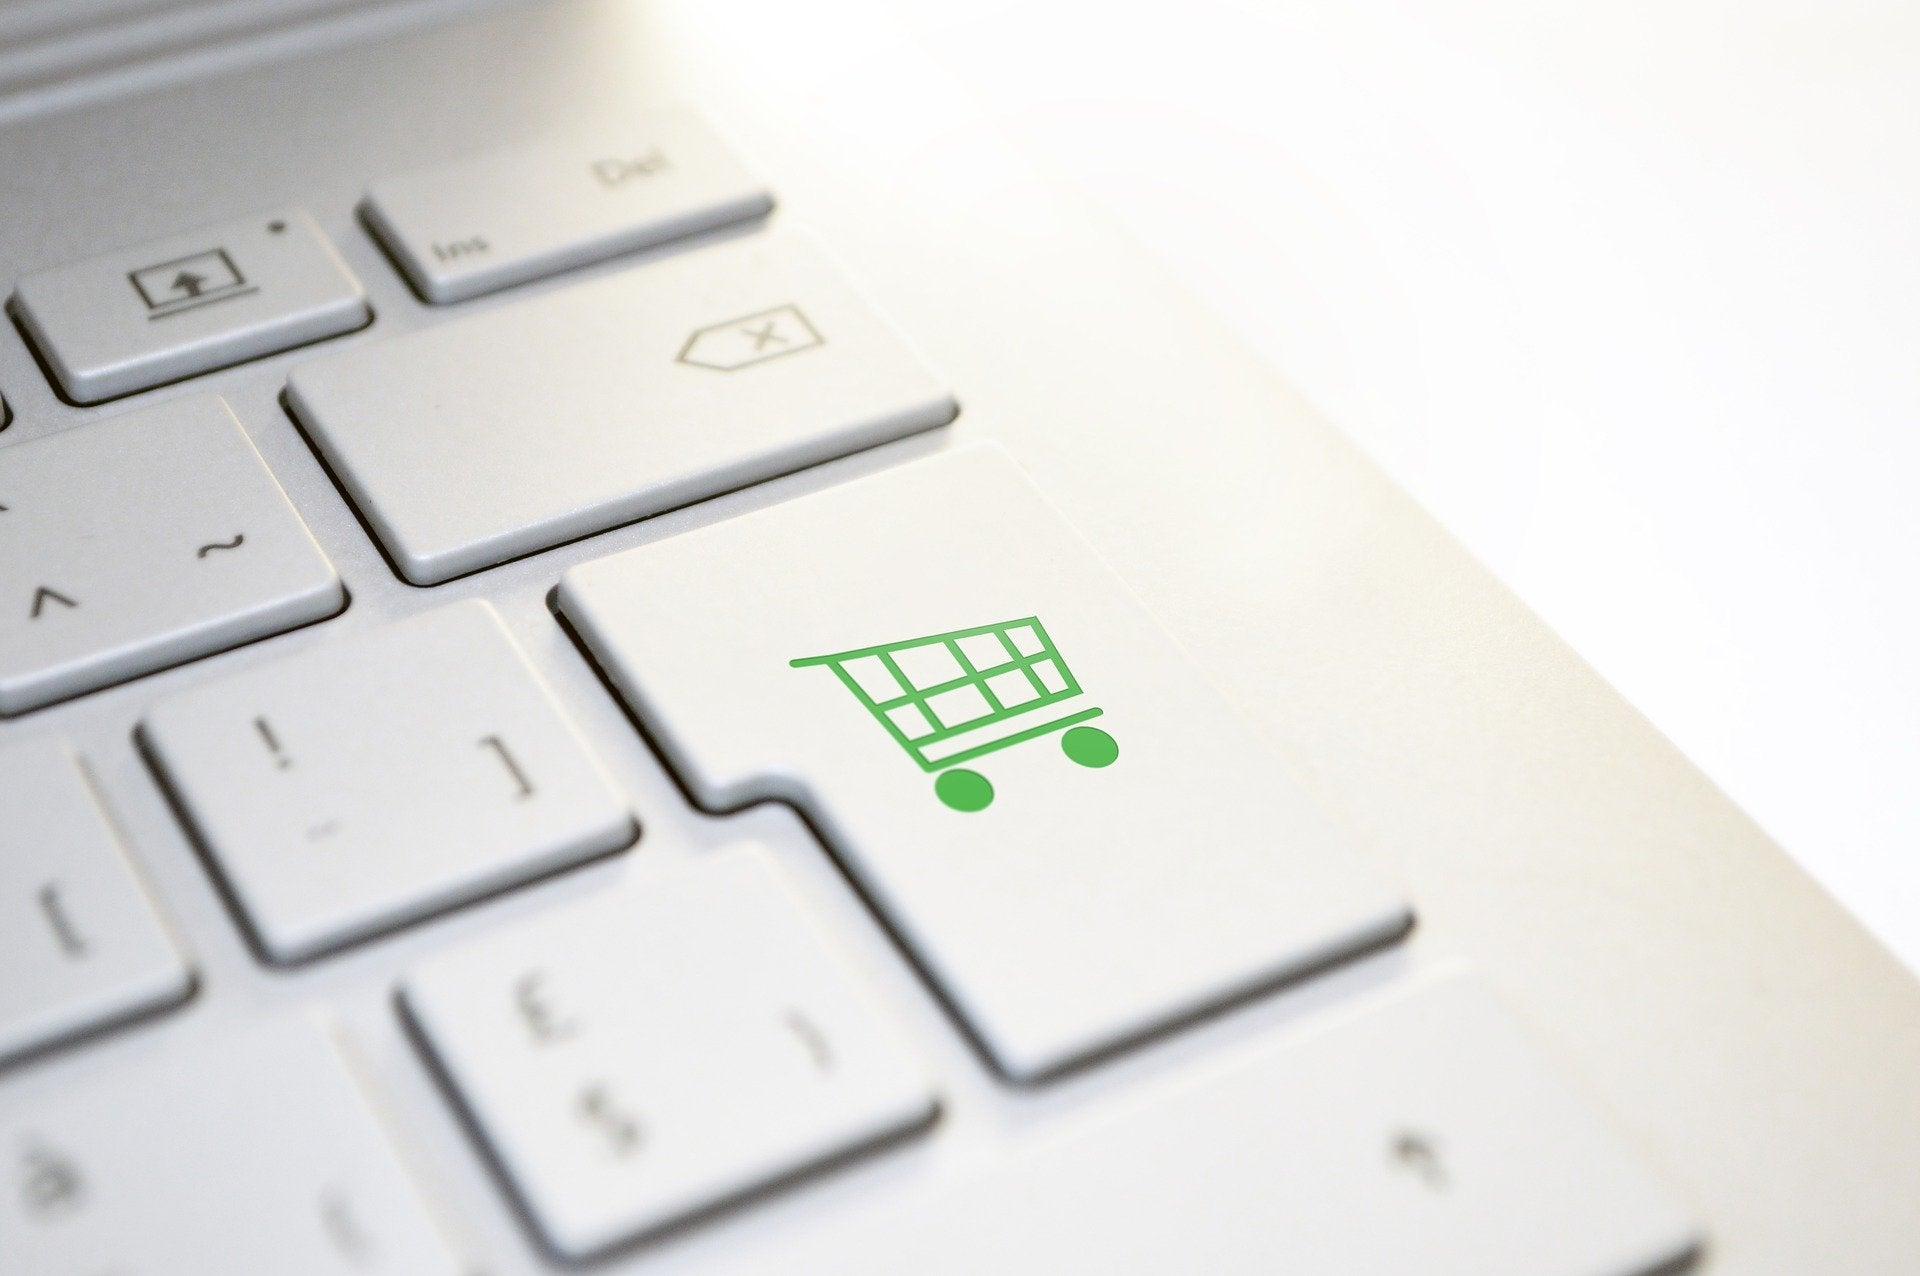 Keyboard with shopping cart button.